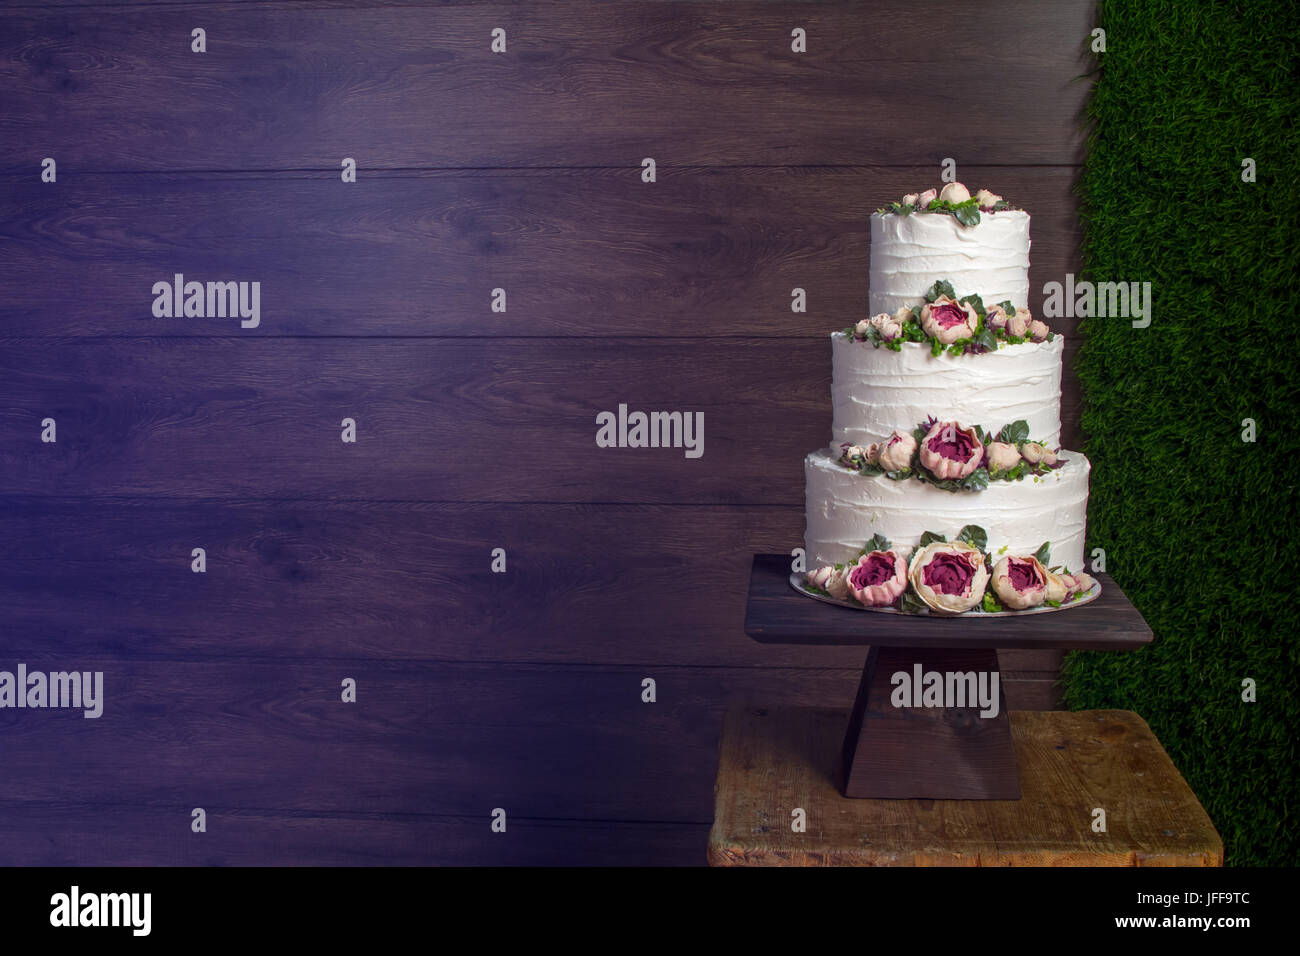 Pleasing Beautiful Tiered Birthday Cake On A Dark Wooden Background Stock Funny Birthday Cards Online Inifofree Goldxyz